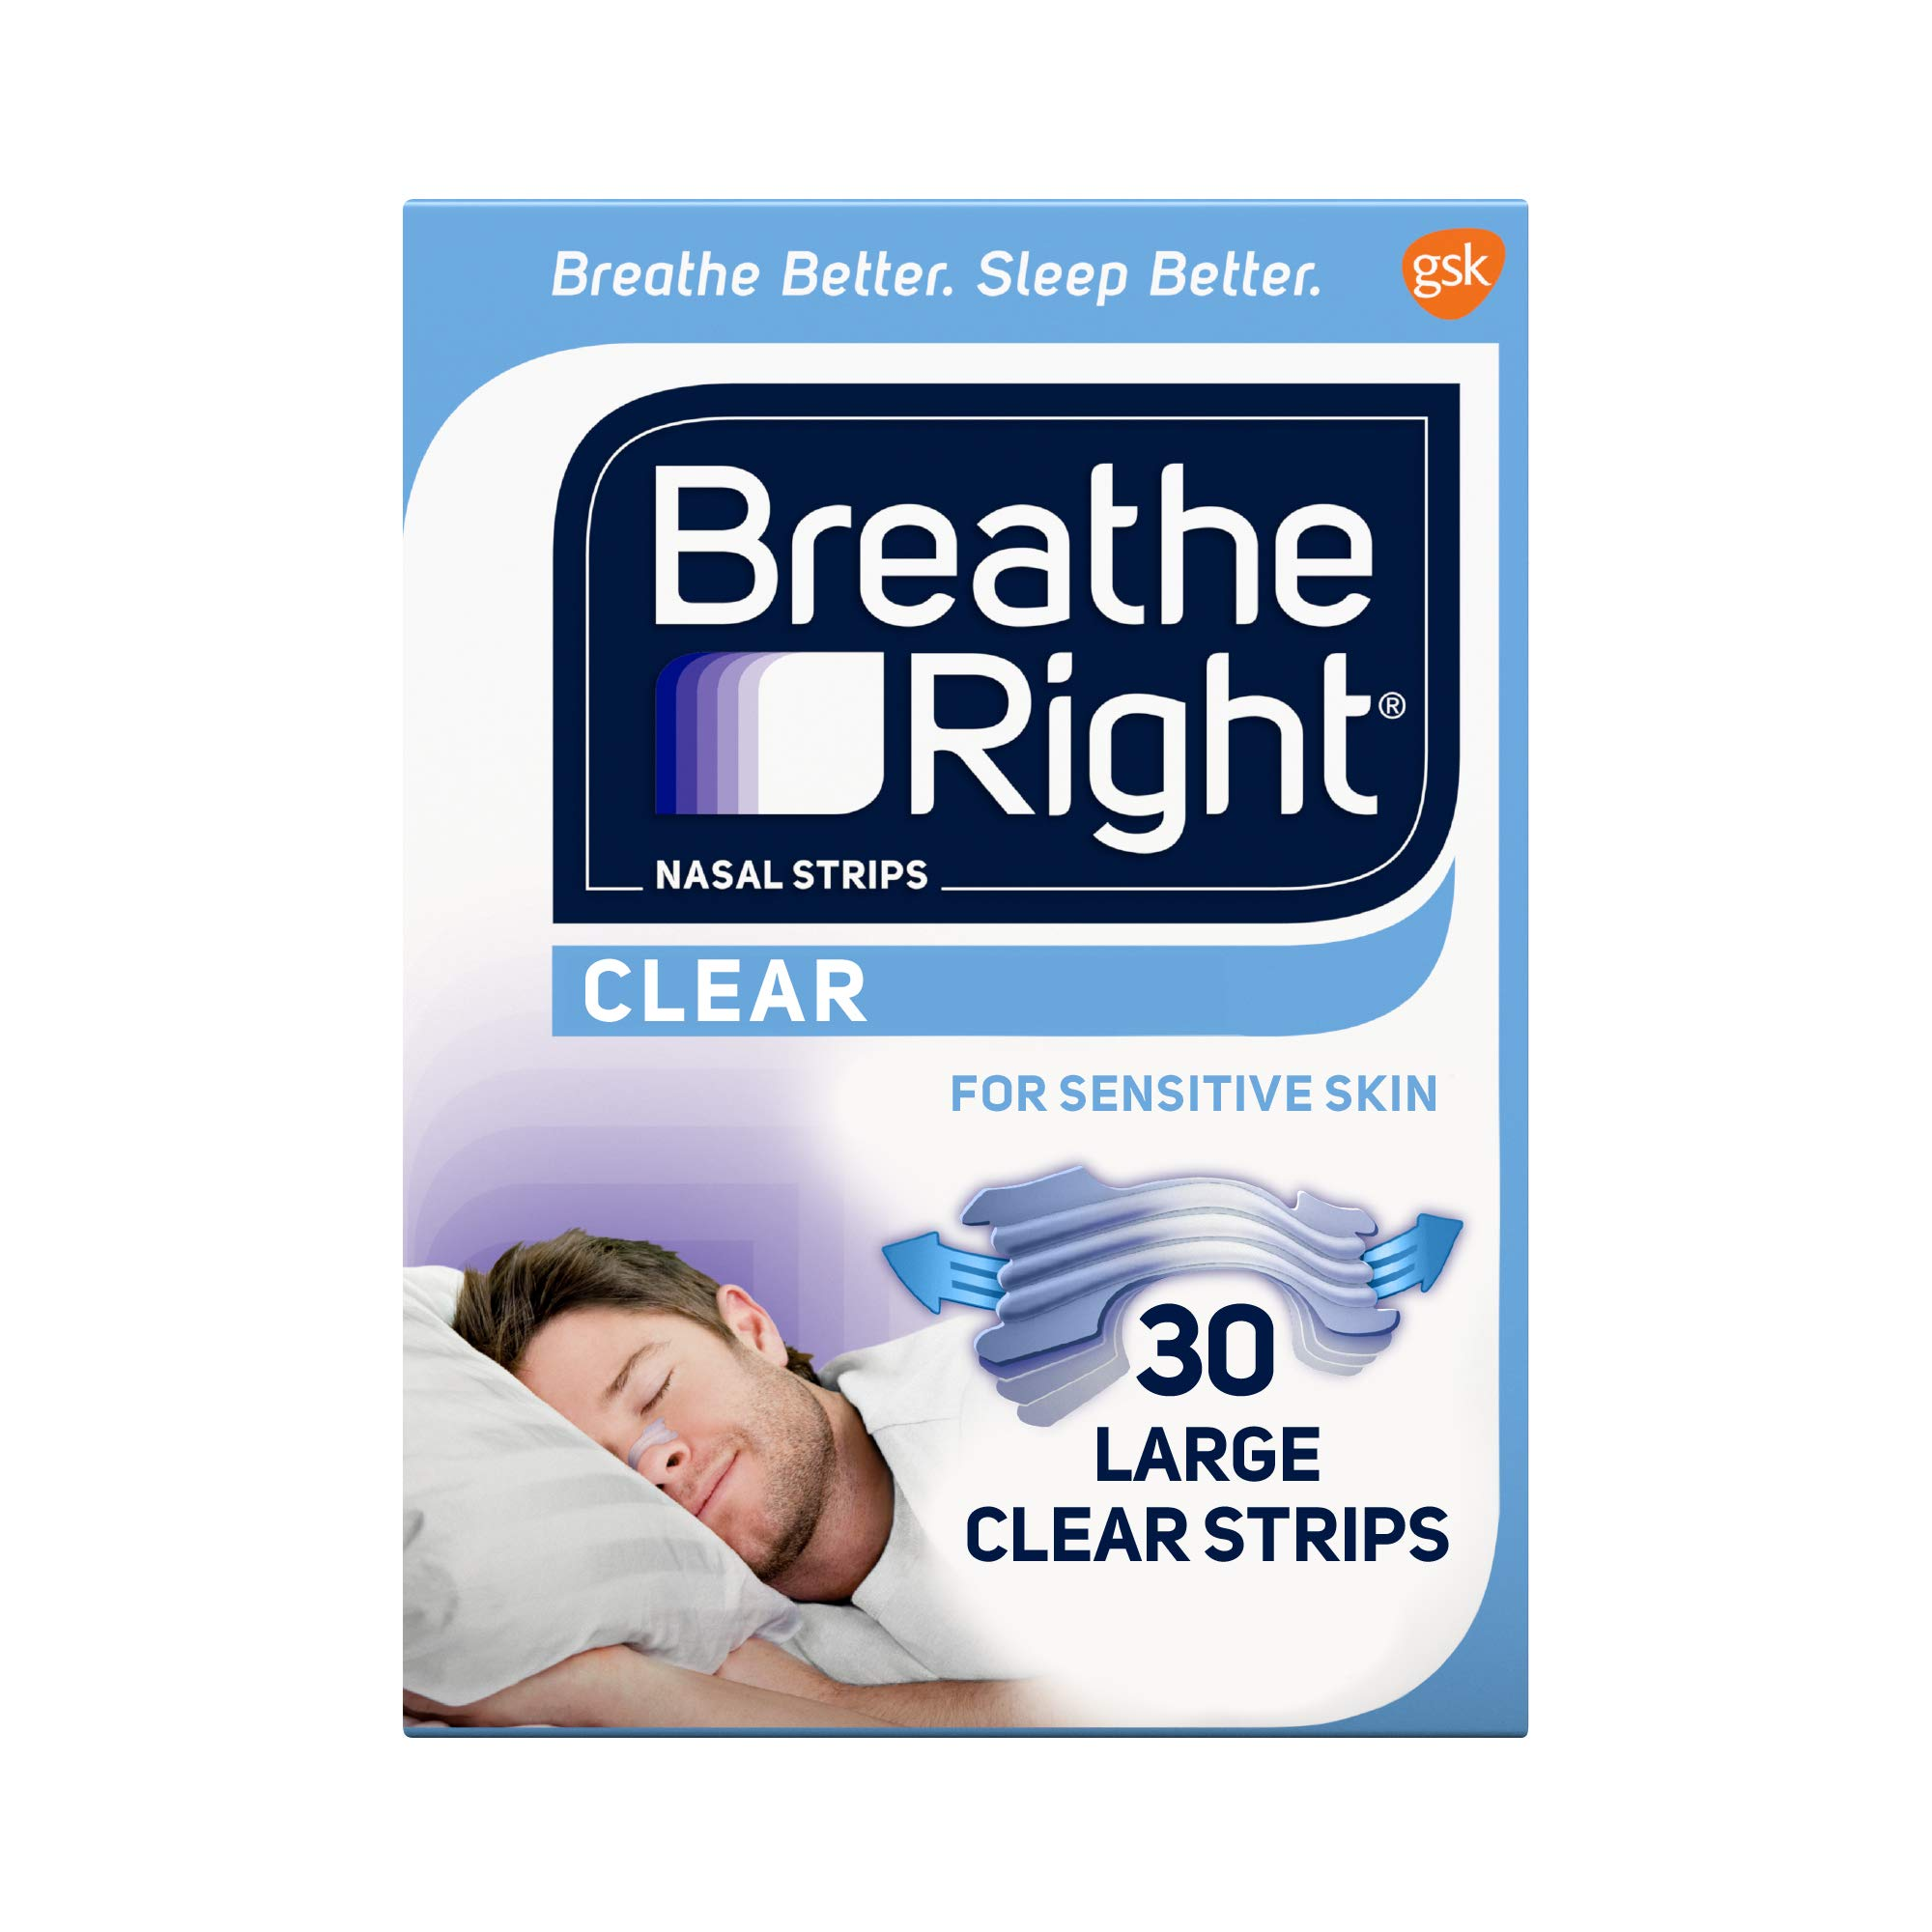 Breathe Right Nasal Strips to Stop Snoring, Drug-Free, Clear for Sensitive Skin, 30 count (Pack of 2) ( Pack May Vary )